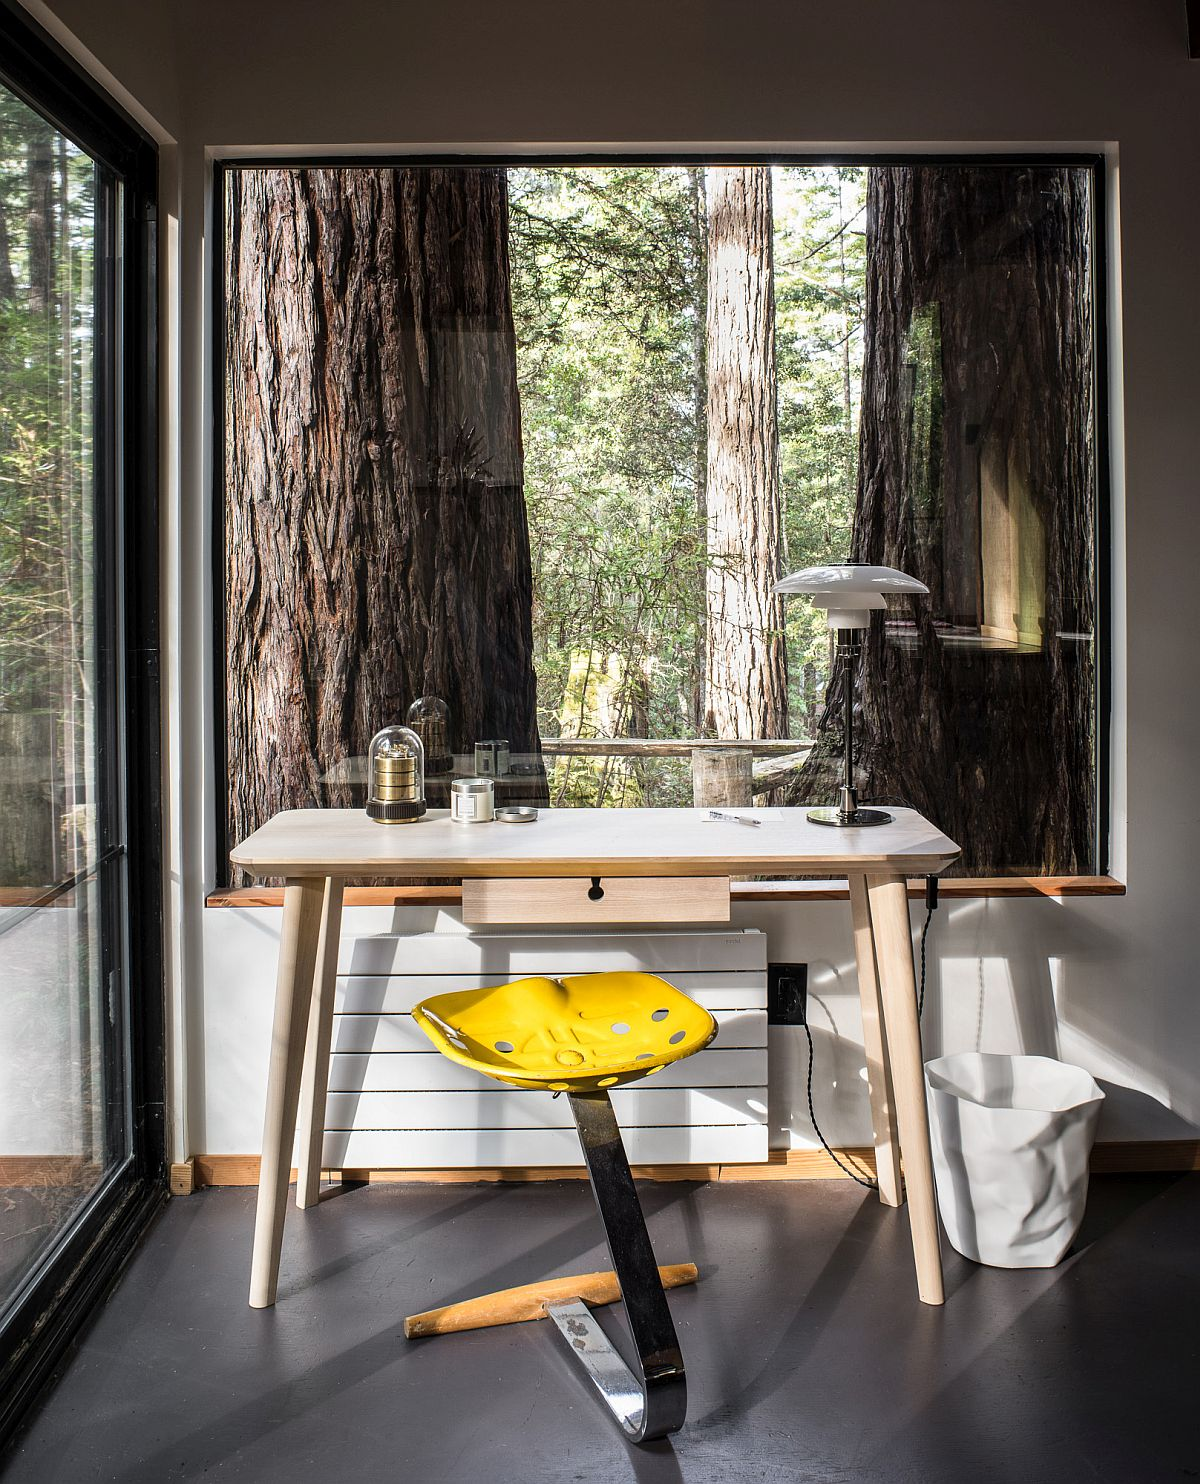 Giant redwood trees and the forest outside make this a stunning little worksplace